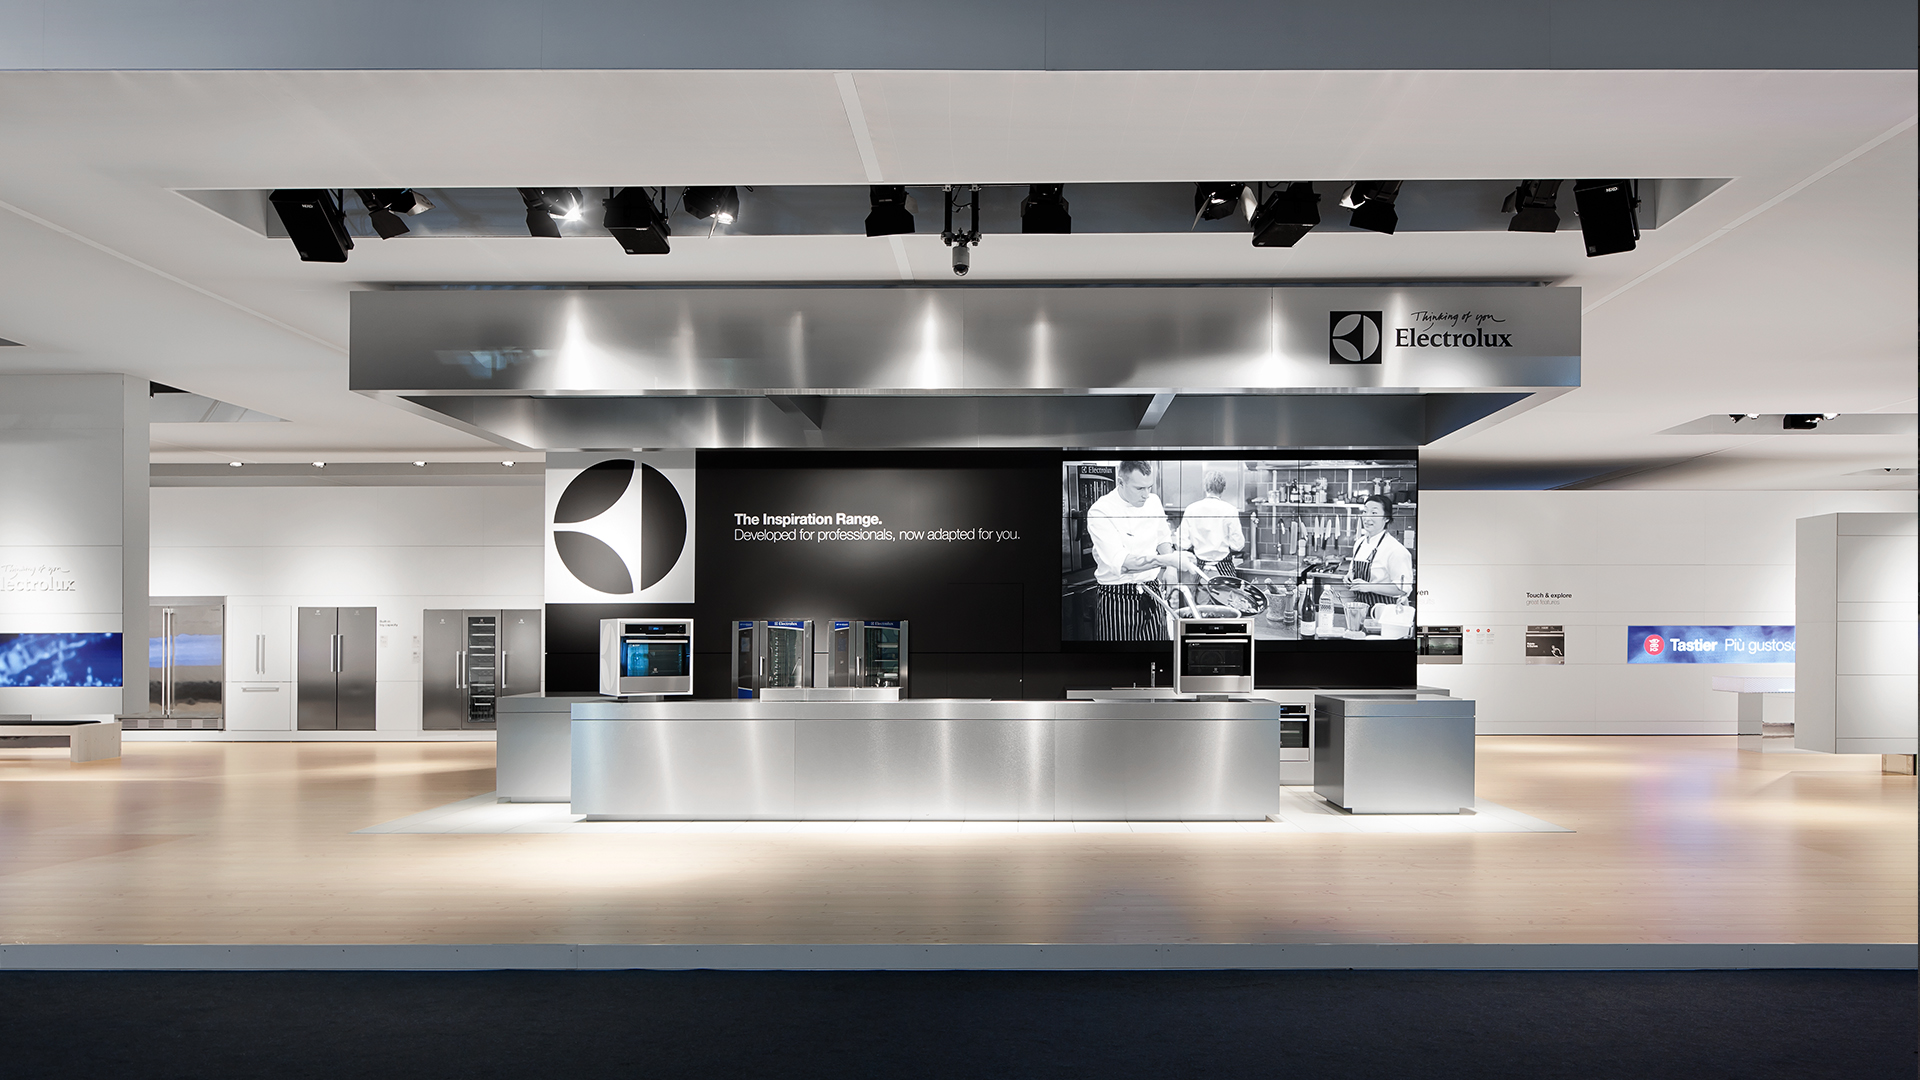 Dart stages the mediatecture for Electrolux at the EuroCucina 2012